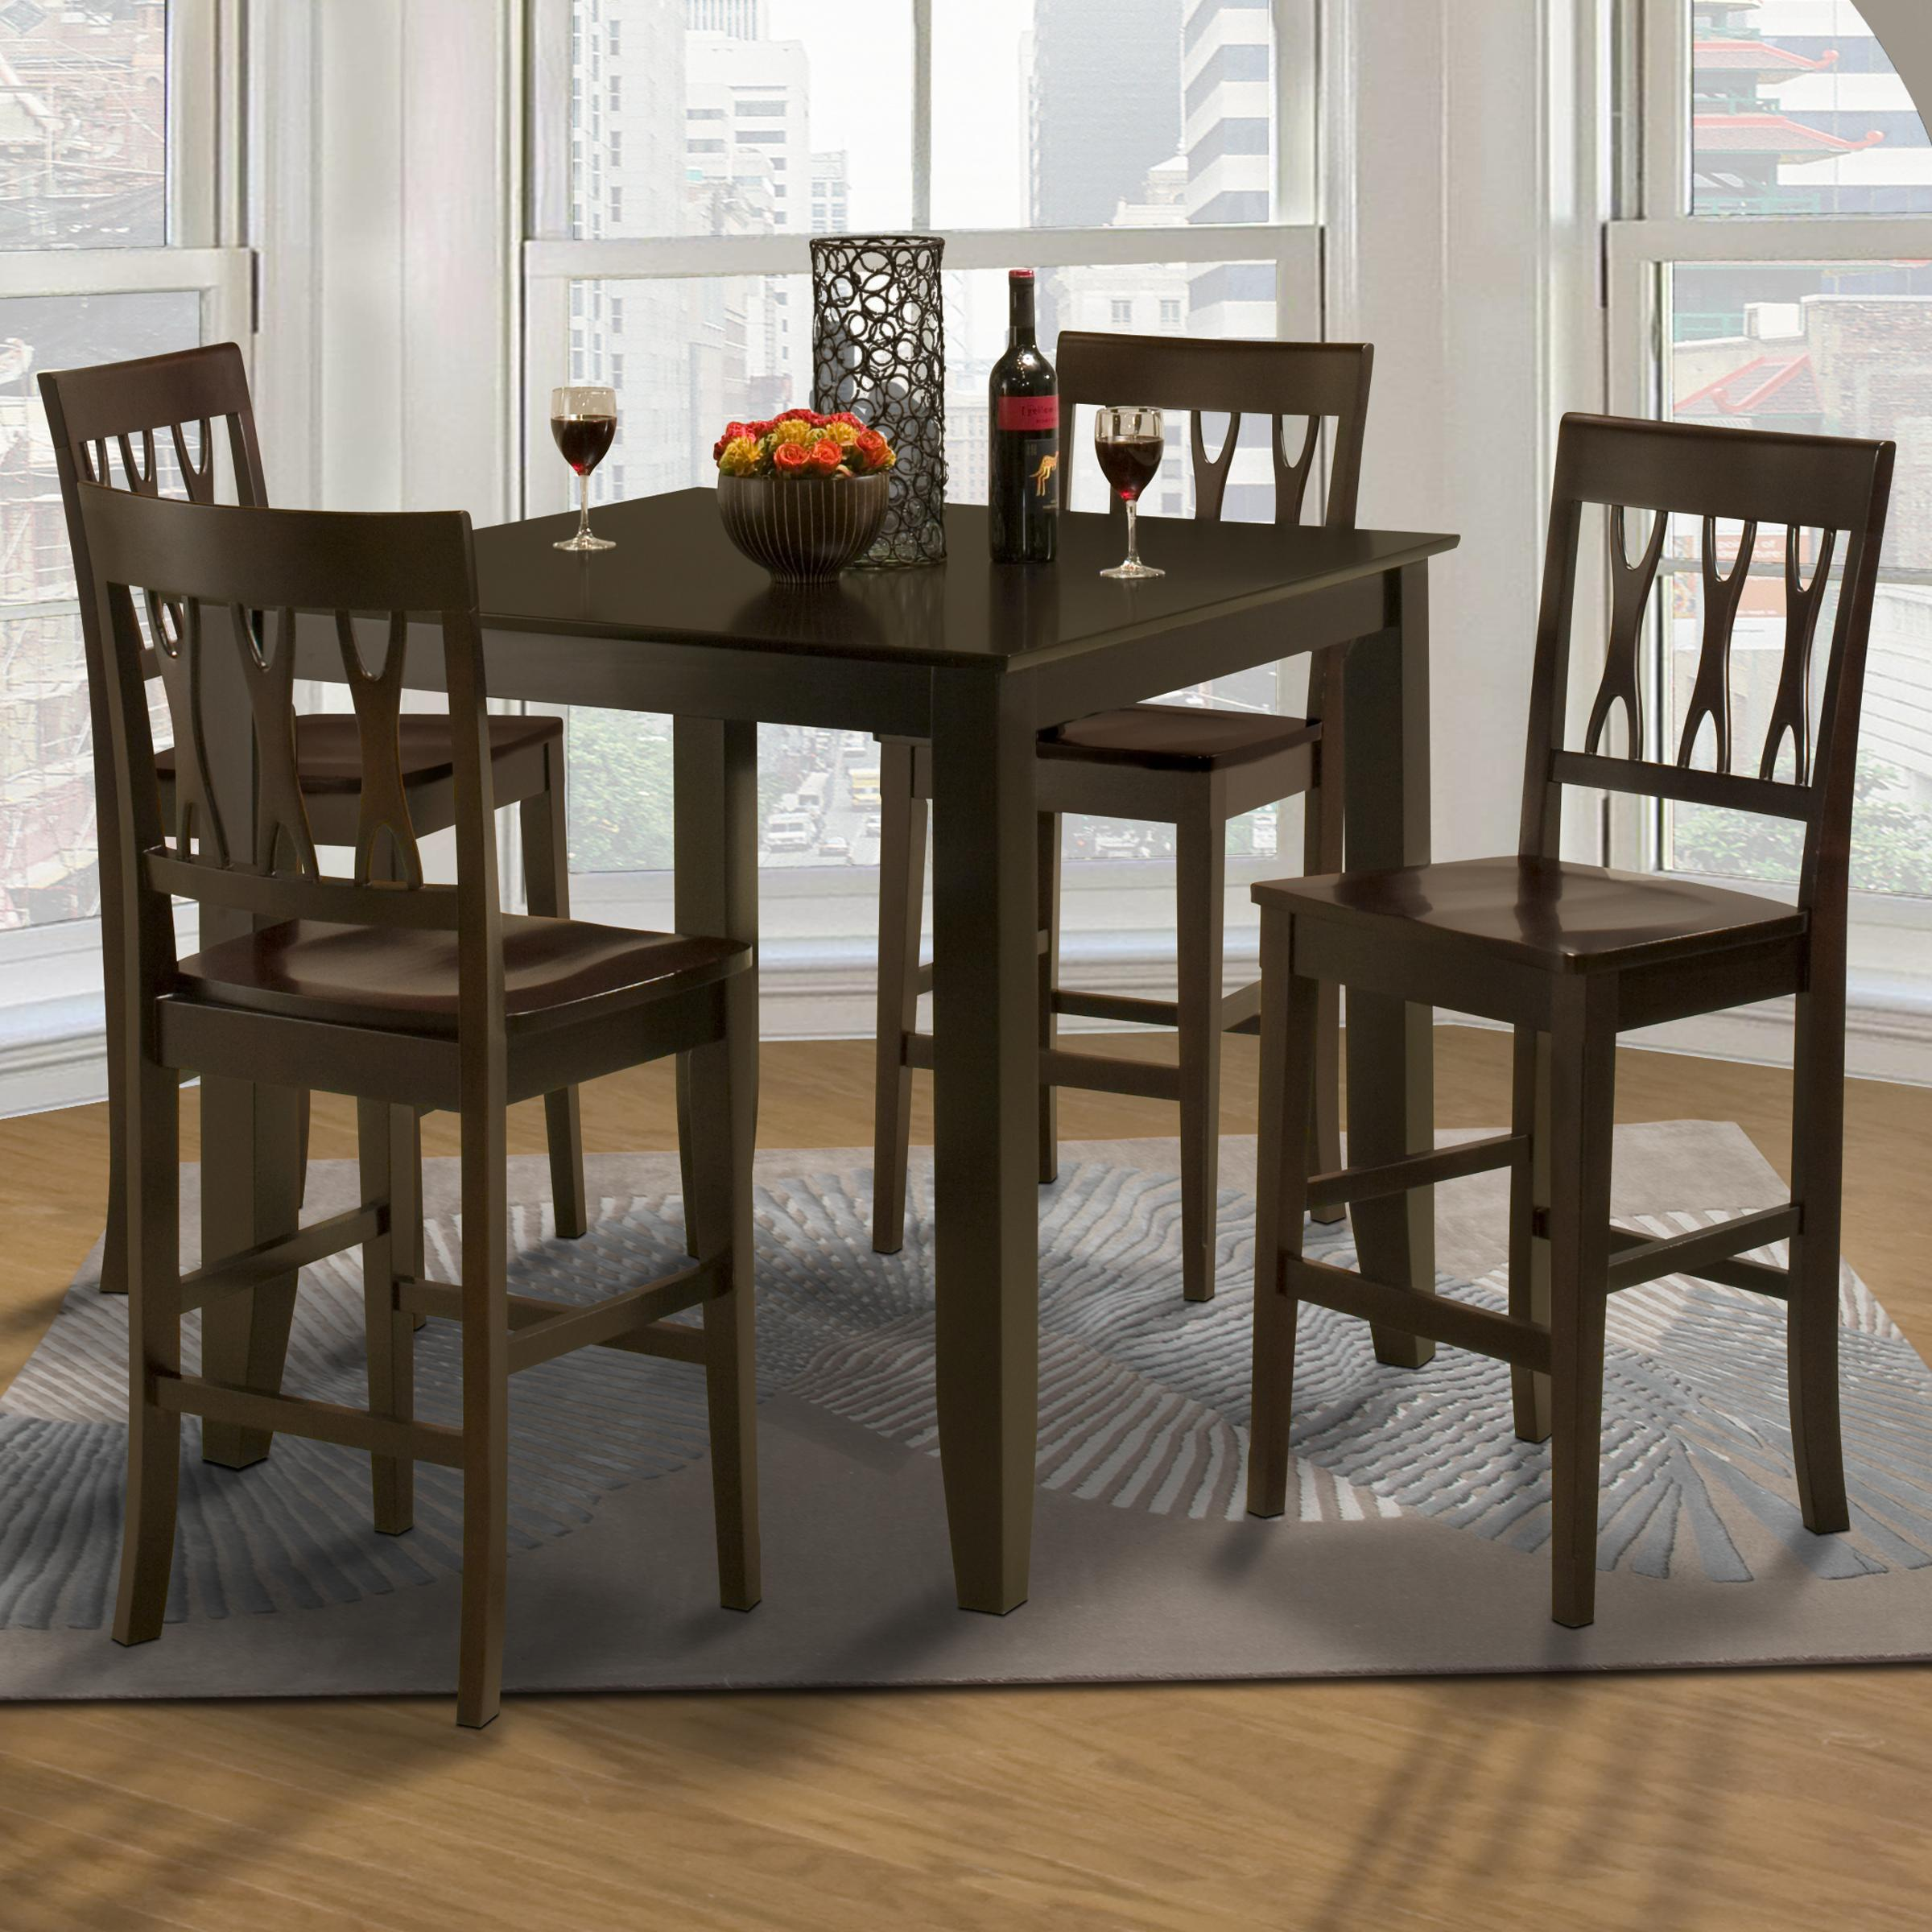 Style 19 Square Counter Height Kitchen Table